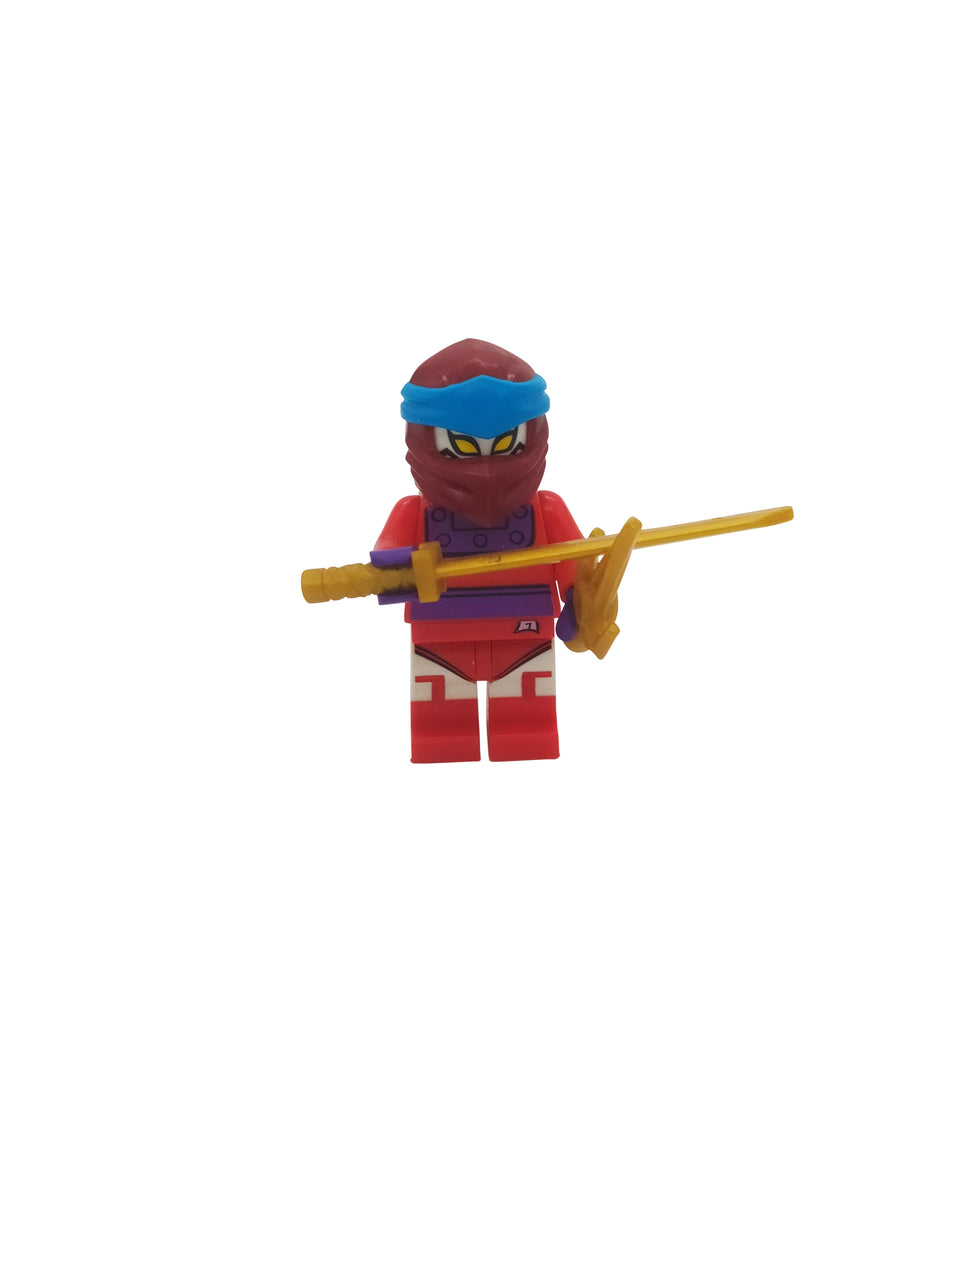 Cool Ninja figure with accesories